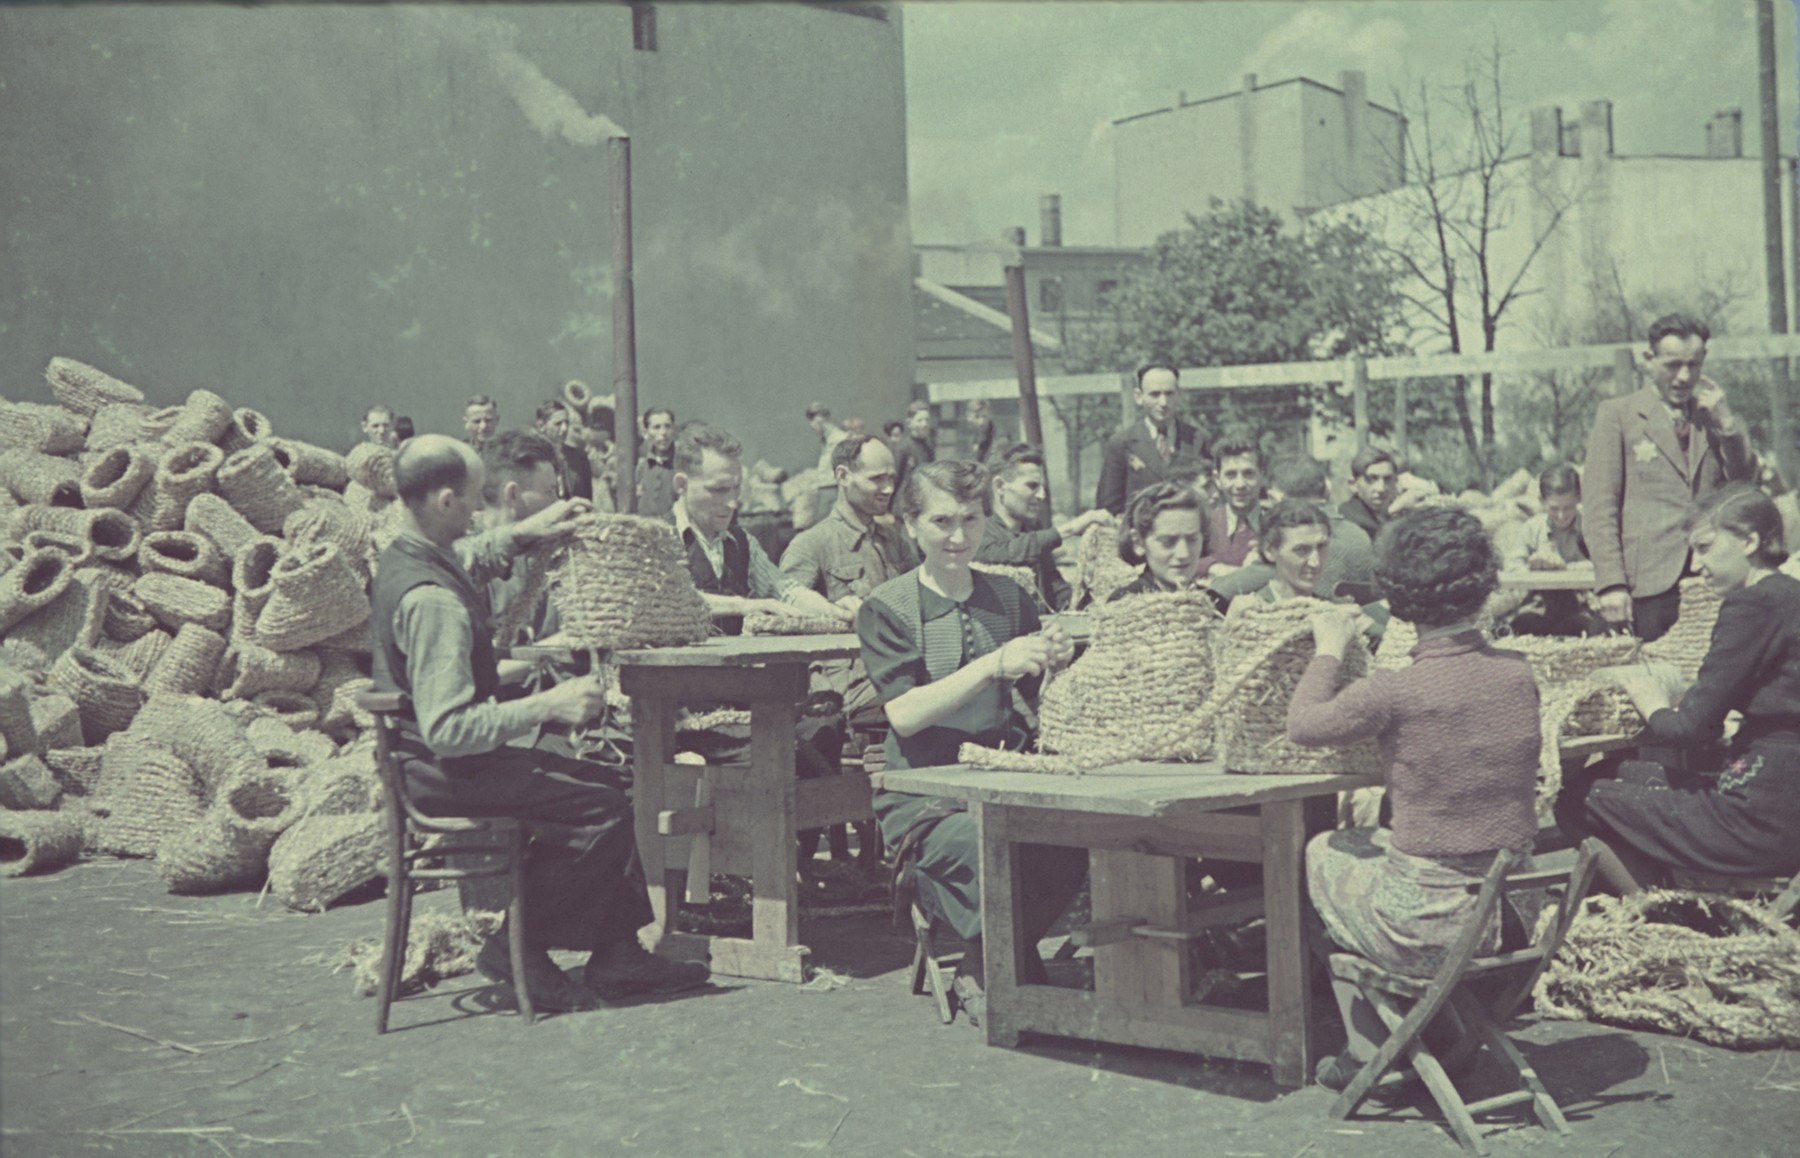 """Workers roll up coils of straw in the straw shoe factory of the Lodz ghetto.  Original German caption: """"Getto-Litzmannstadt, Strohschufabrik"""" (straw shoe factory), #207."""